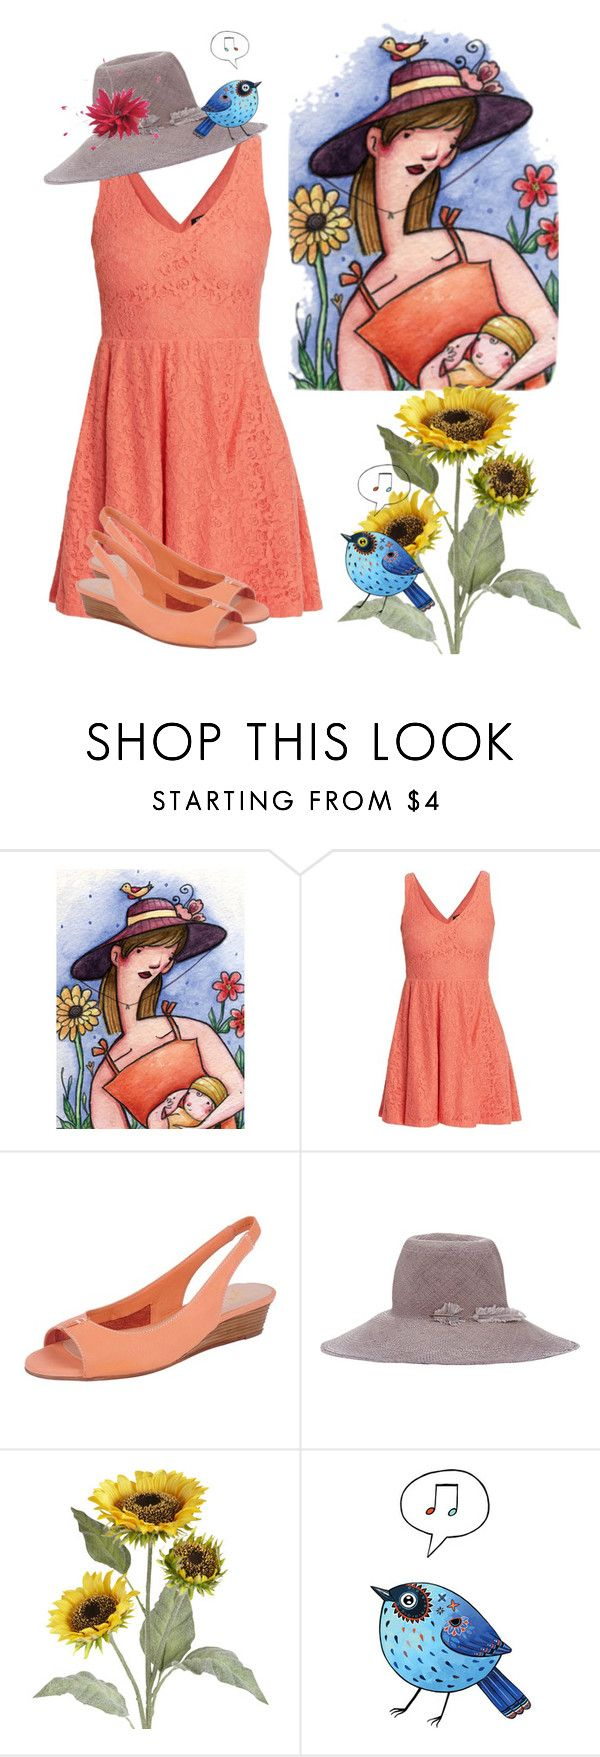 """Mother & Child"" by naviaux ❤ liked on Polyvore featuring Morgan, French Sole FS/NY, Littledoe, Pier 1 Imports, Jane Tran, women's clothing, women's fashion, women, female and woman"